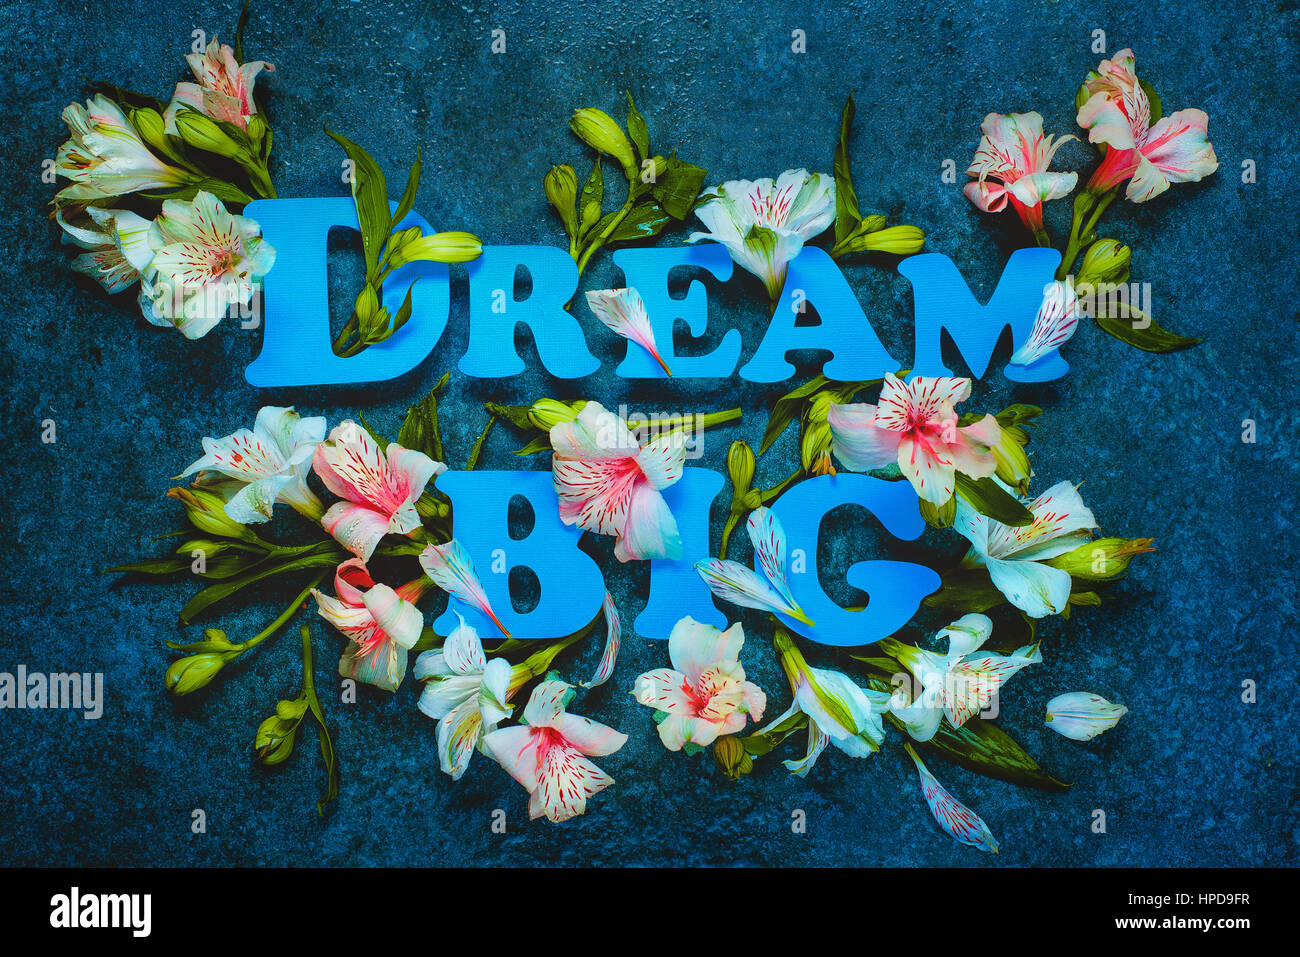 Dream big lettering with white flowers and leaves on a dark marble dream big lettering with white flowers and leaves on a dark marble background letters are made from pastel paper mightylinksfo